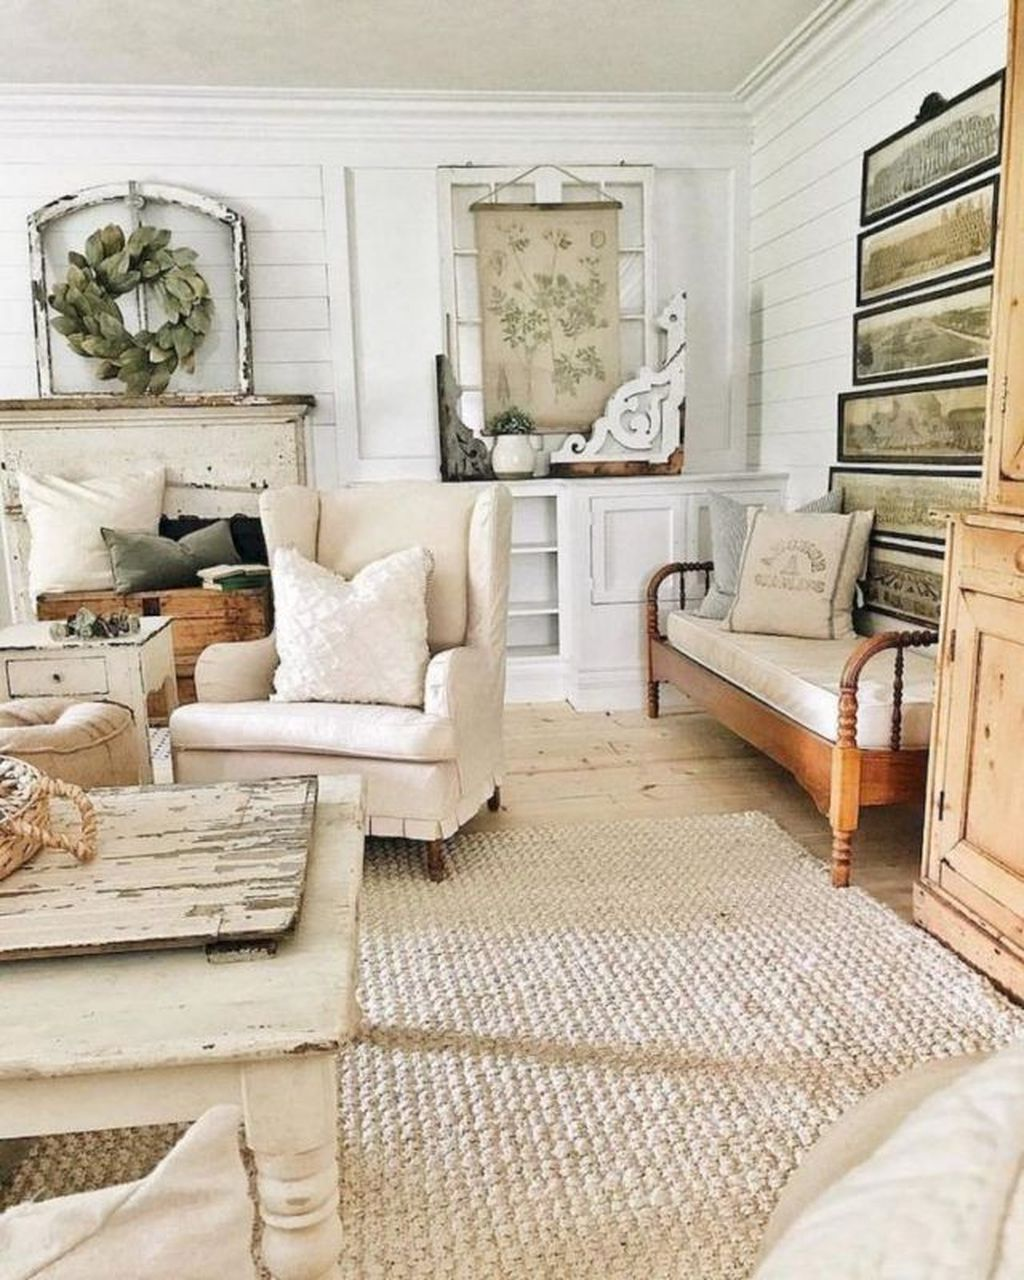 10 Modern Farmhouse Living Room Ideas: 36 Simply French Country Home Decor Ideas